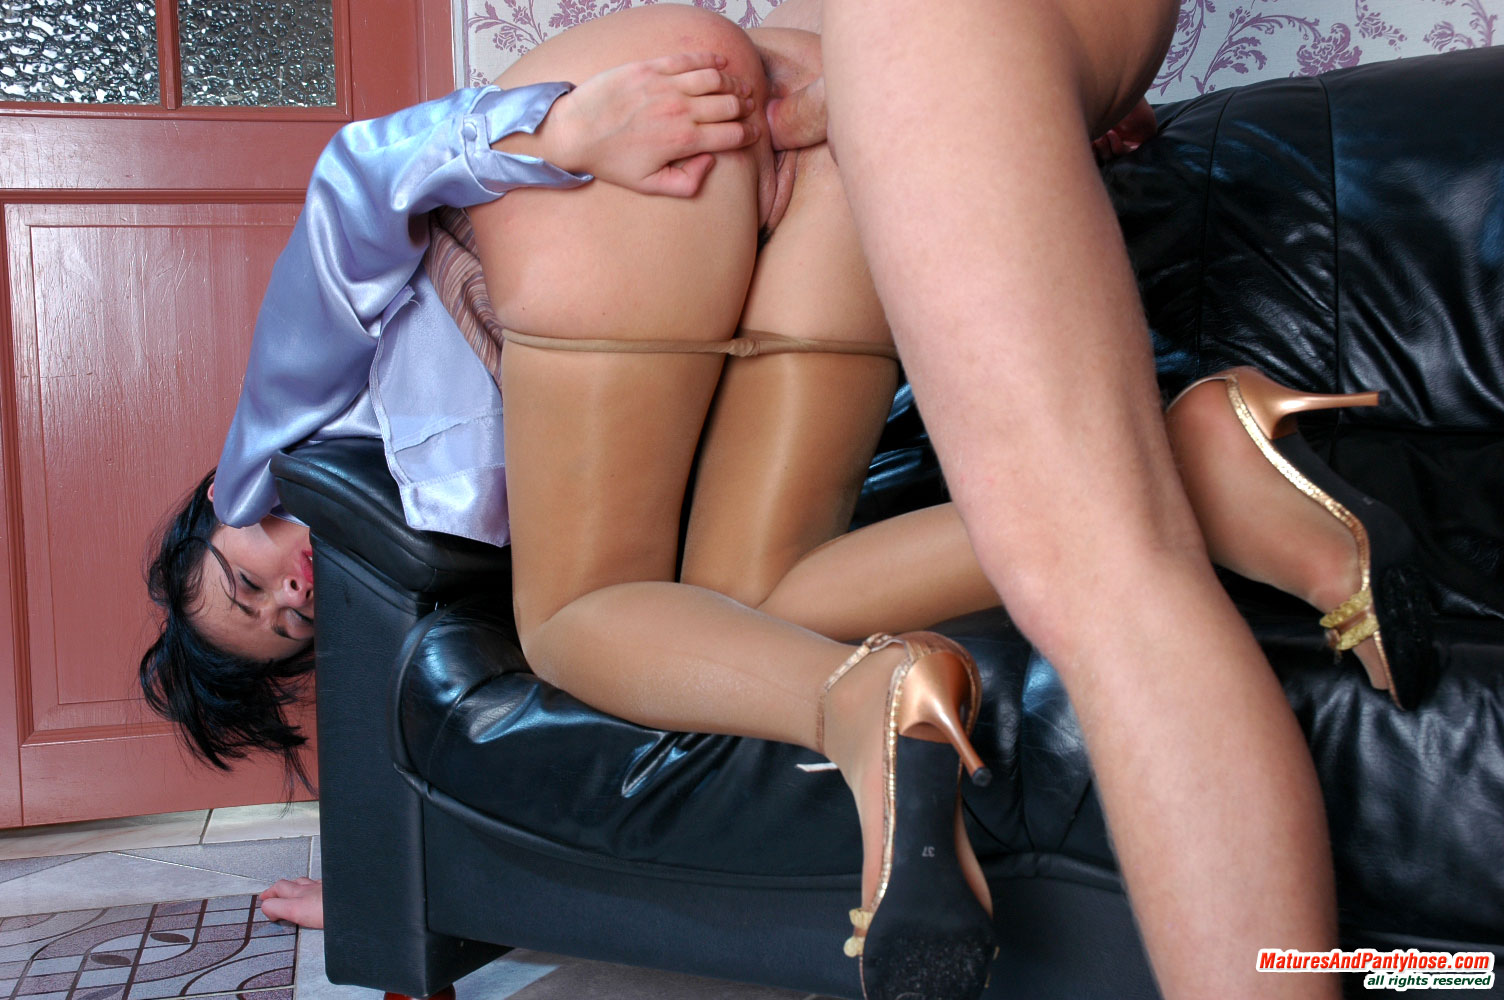 Apologise, In crazy pantyhose sex action charming really. All